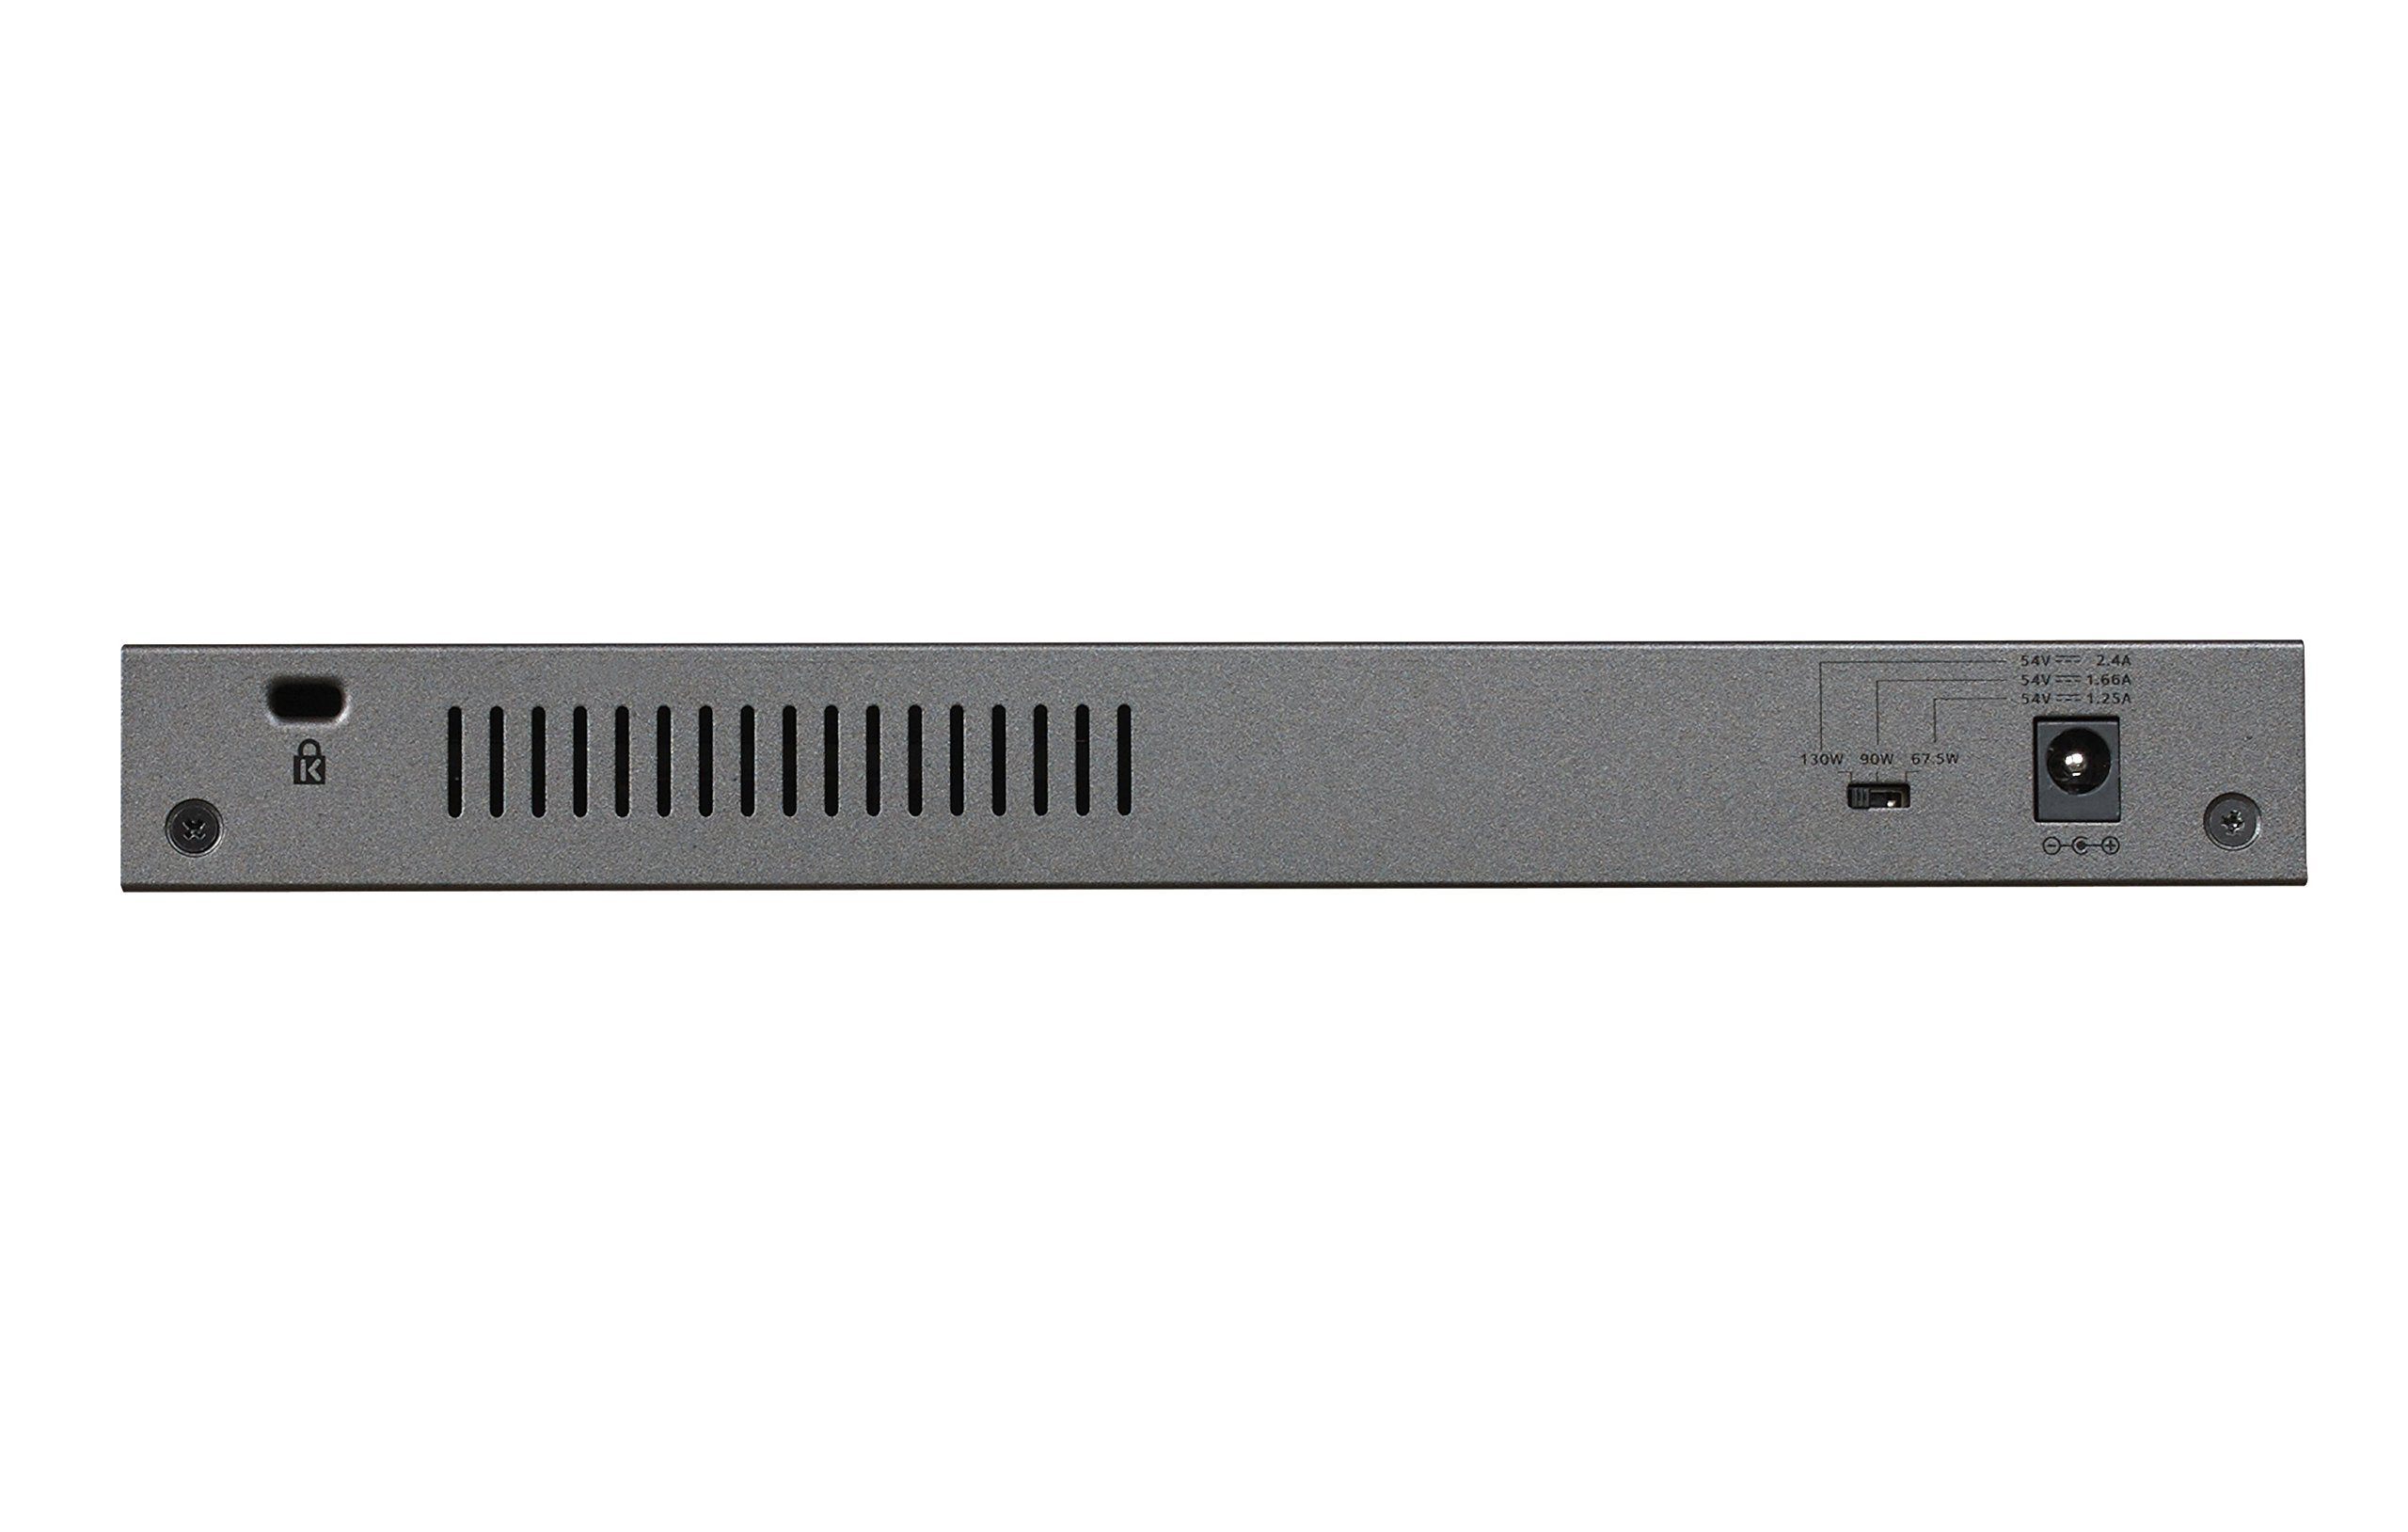 NETGEAR 8-Port Gigabit Unmanaged Switch, PoE/PoE+ 120W, Fanless, Rackmount, Plug-and-Play, ProSAFE Lifetime Protection (GS108PP) by NETGEAR (Image #4)